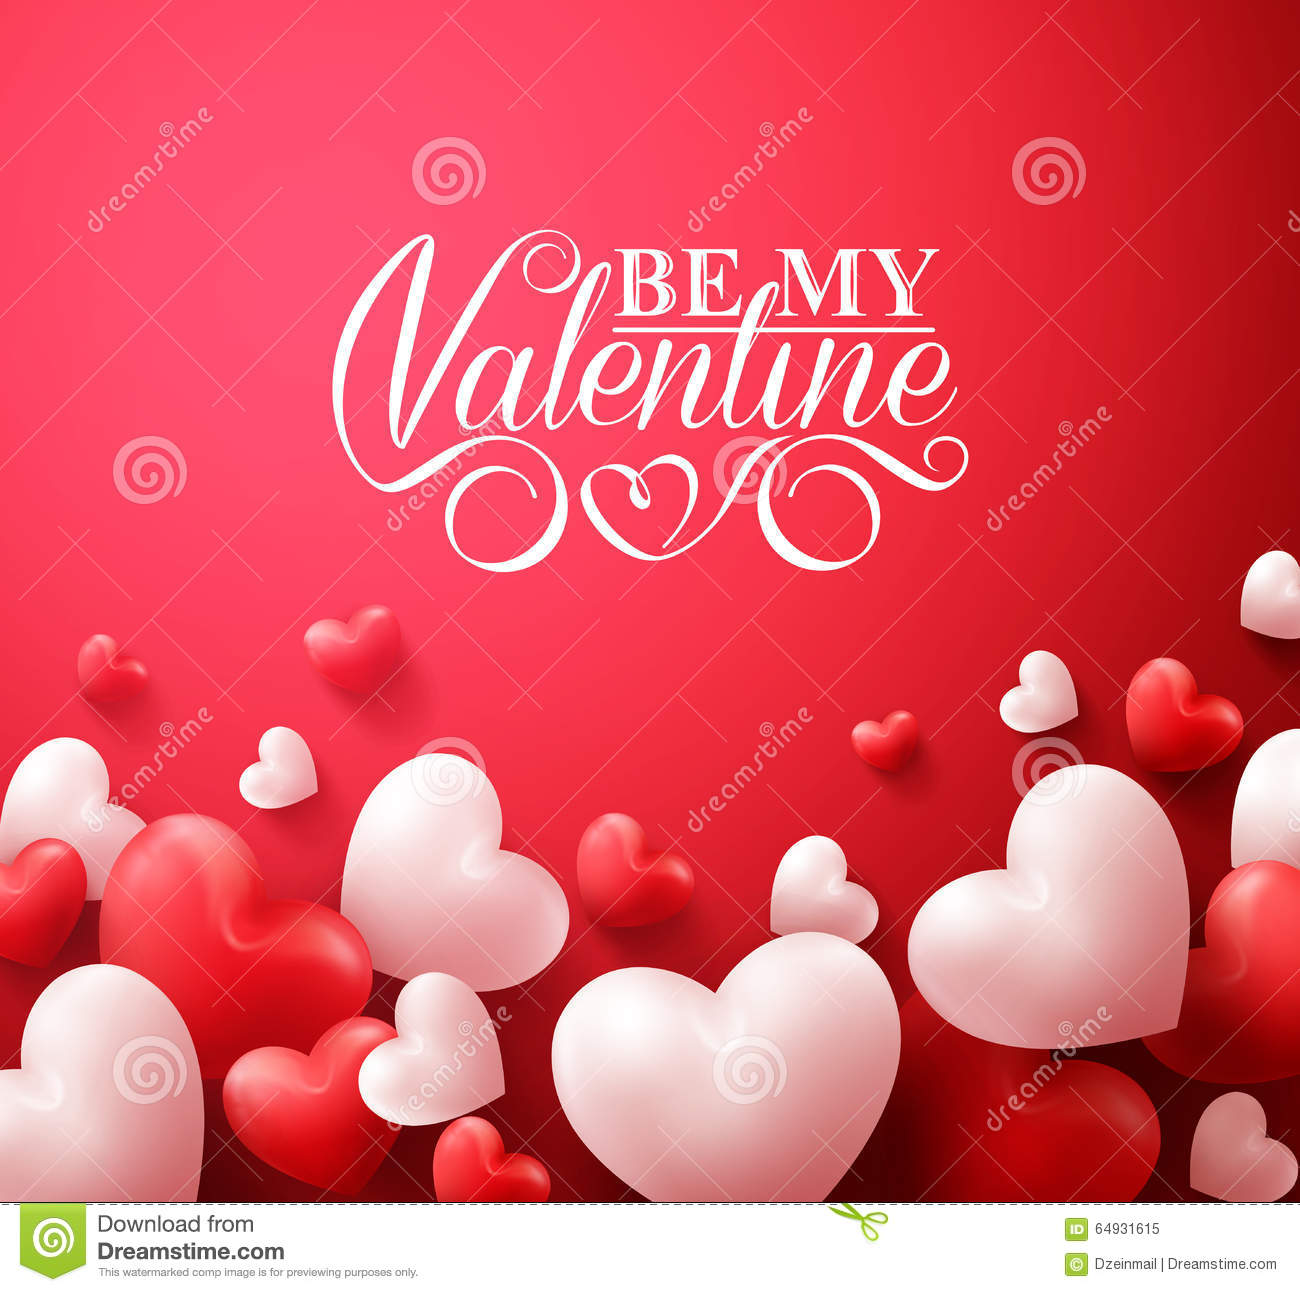 Valentine Hearts In Red Background Floating With Happy ...